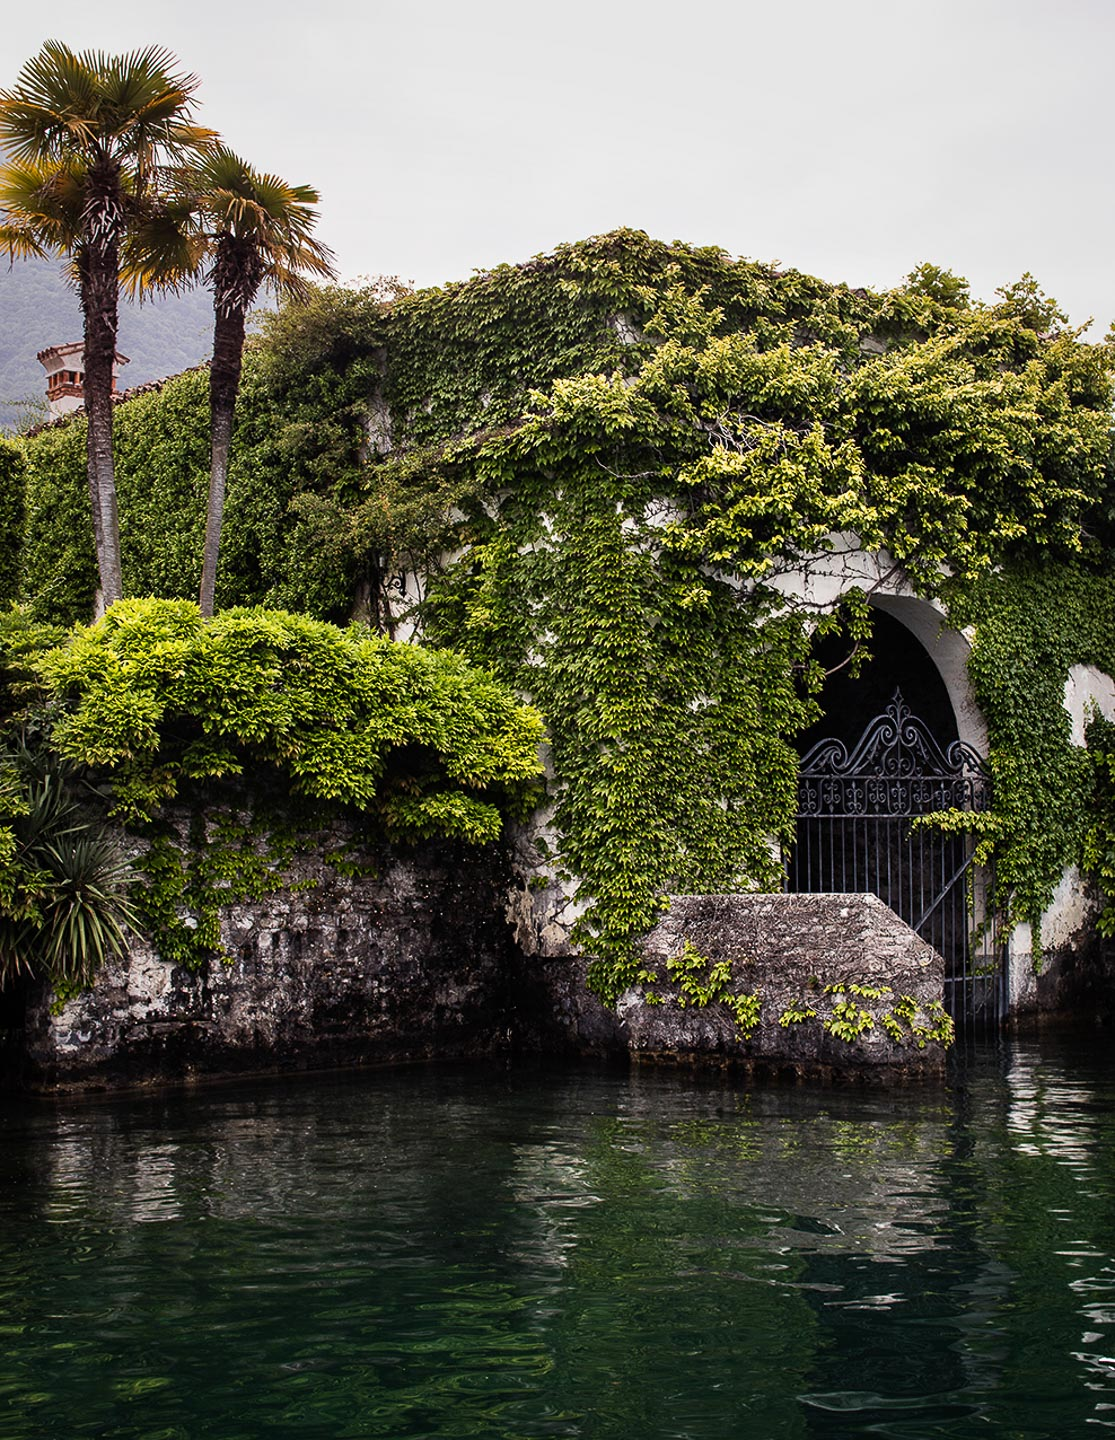 Villa Balbiano luxury property Lake Como Italy boat house greenery best boat service exclusive clientele summer holiday vacation travel accommodation